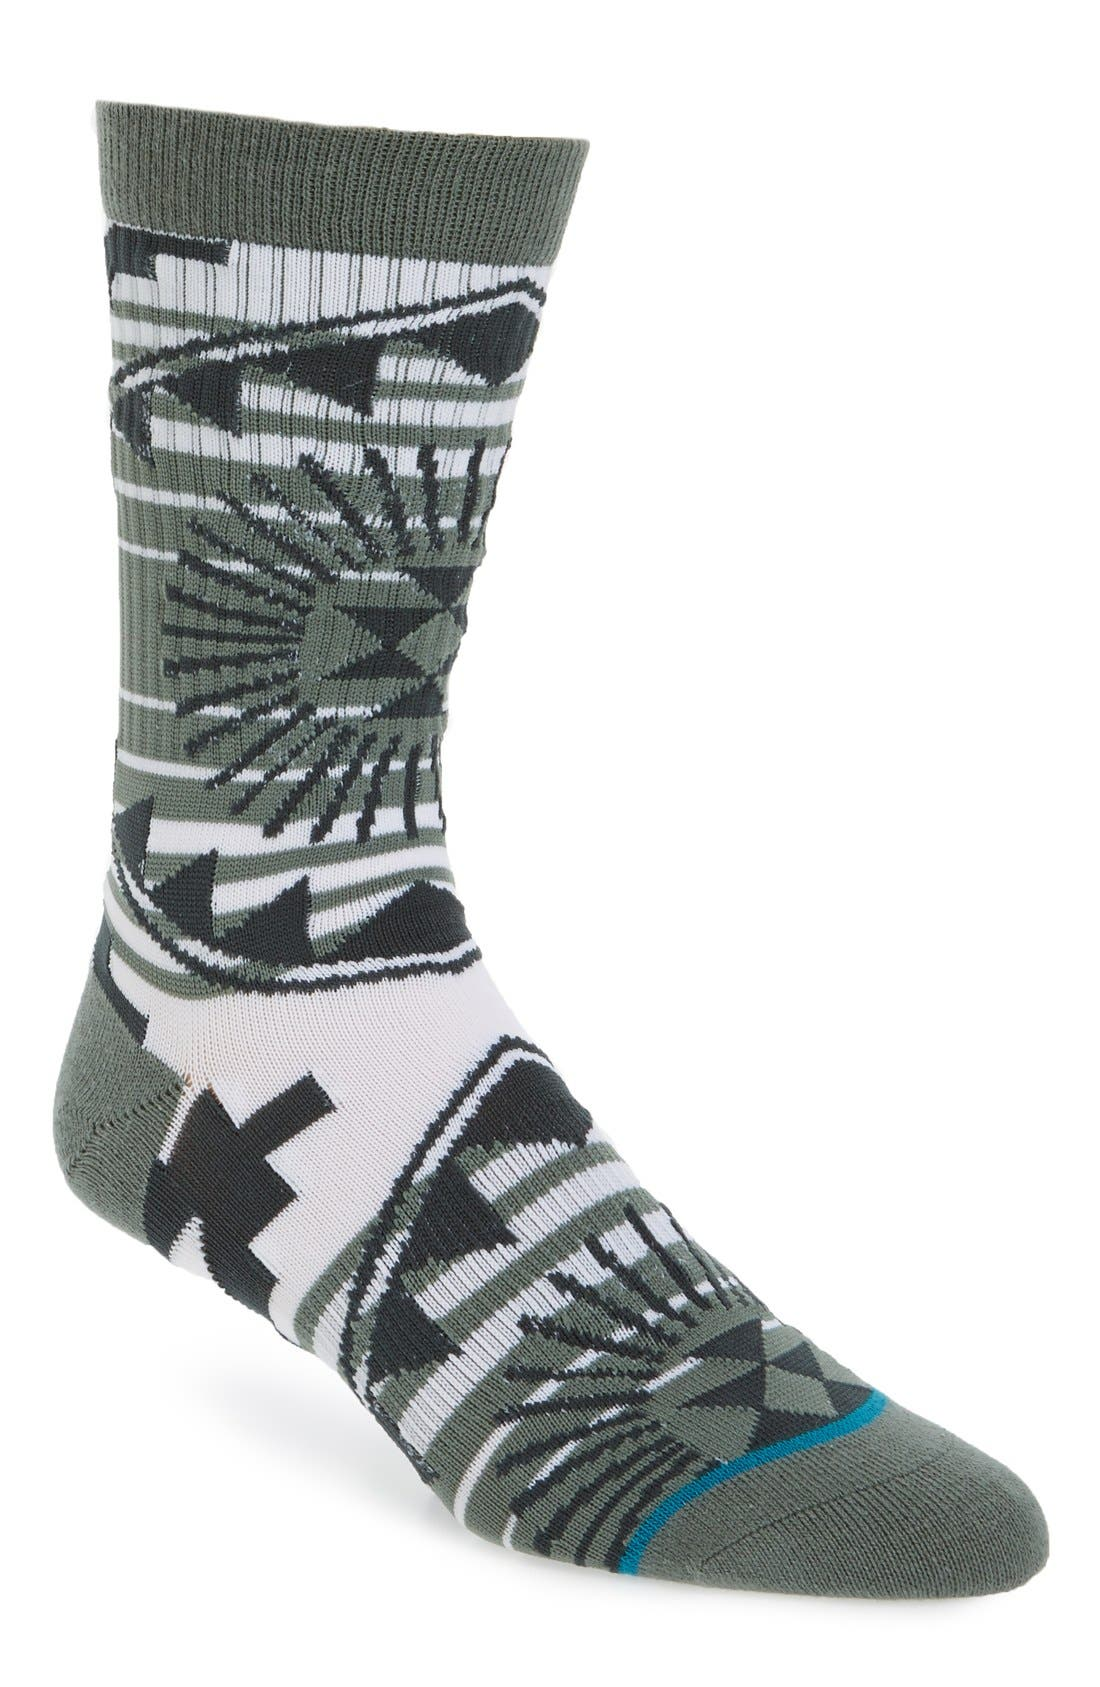 STANCE Sundrop 2 Crew Socks, Main, color, 310